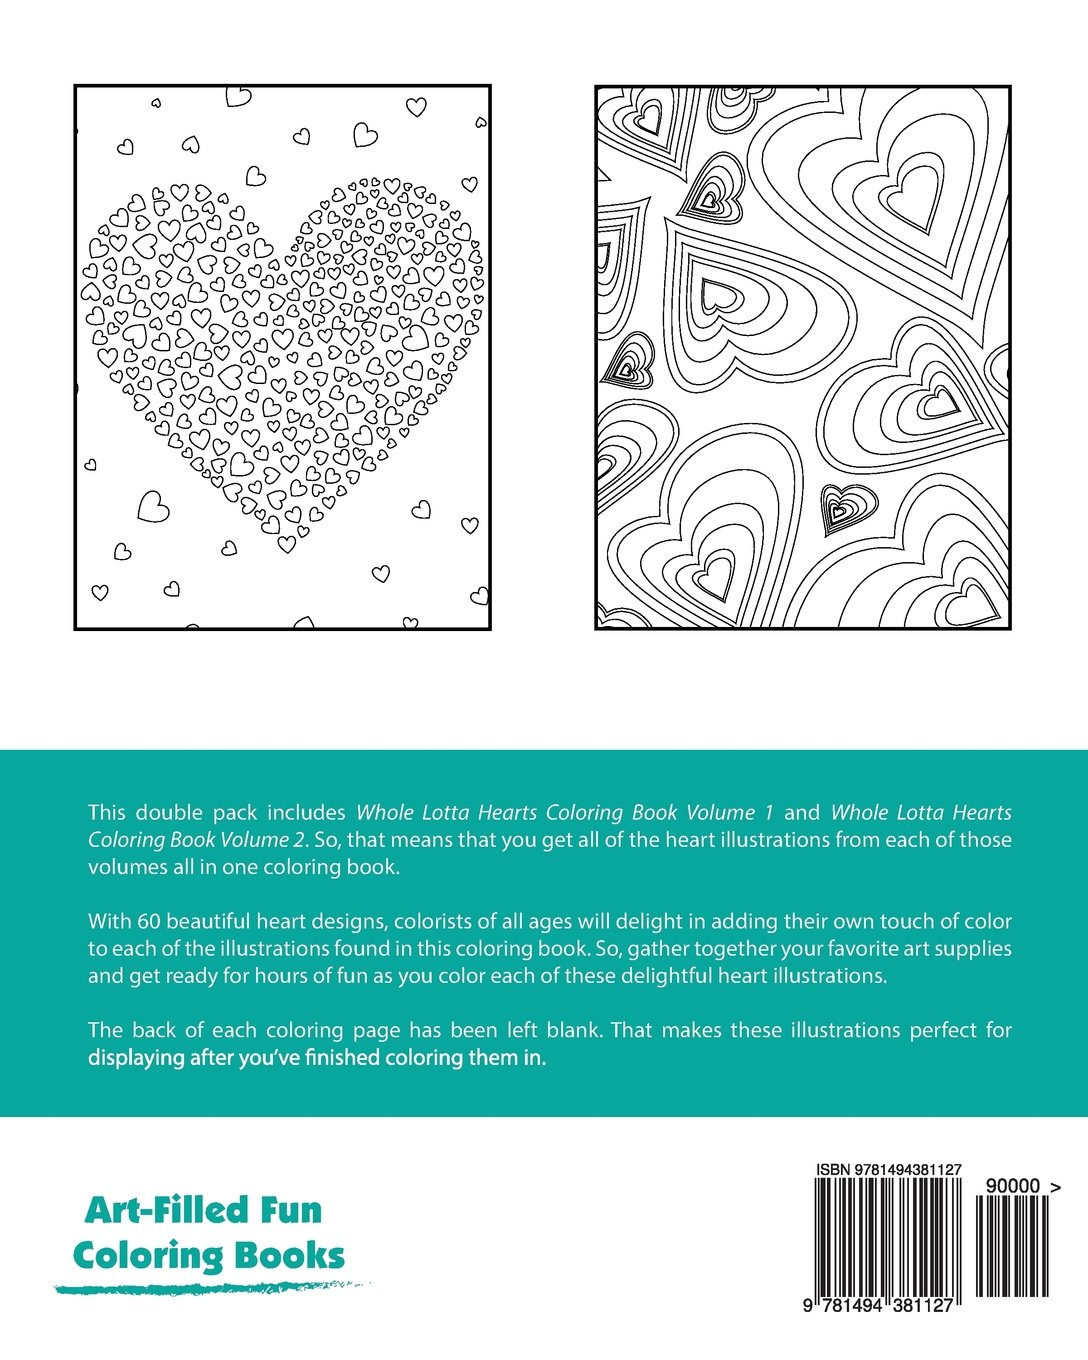 Whole Lotta Hearts Coloring Book Double Pack (Volumes 1 & 2) (Art ...